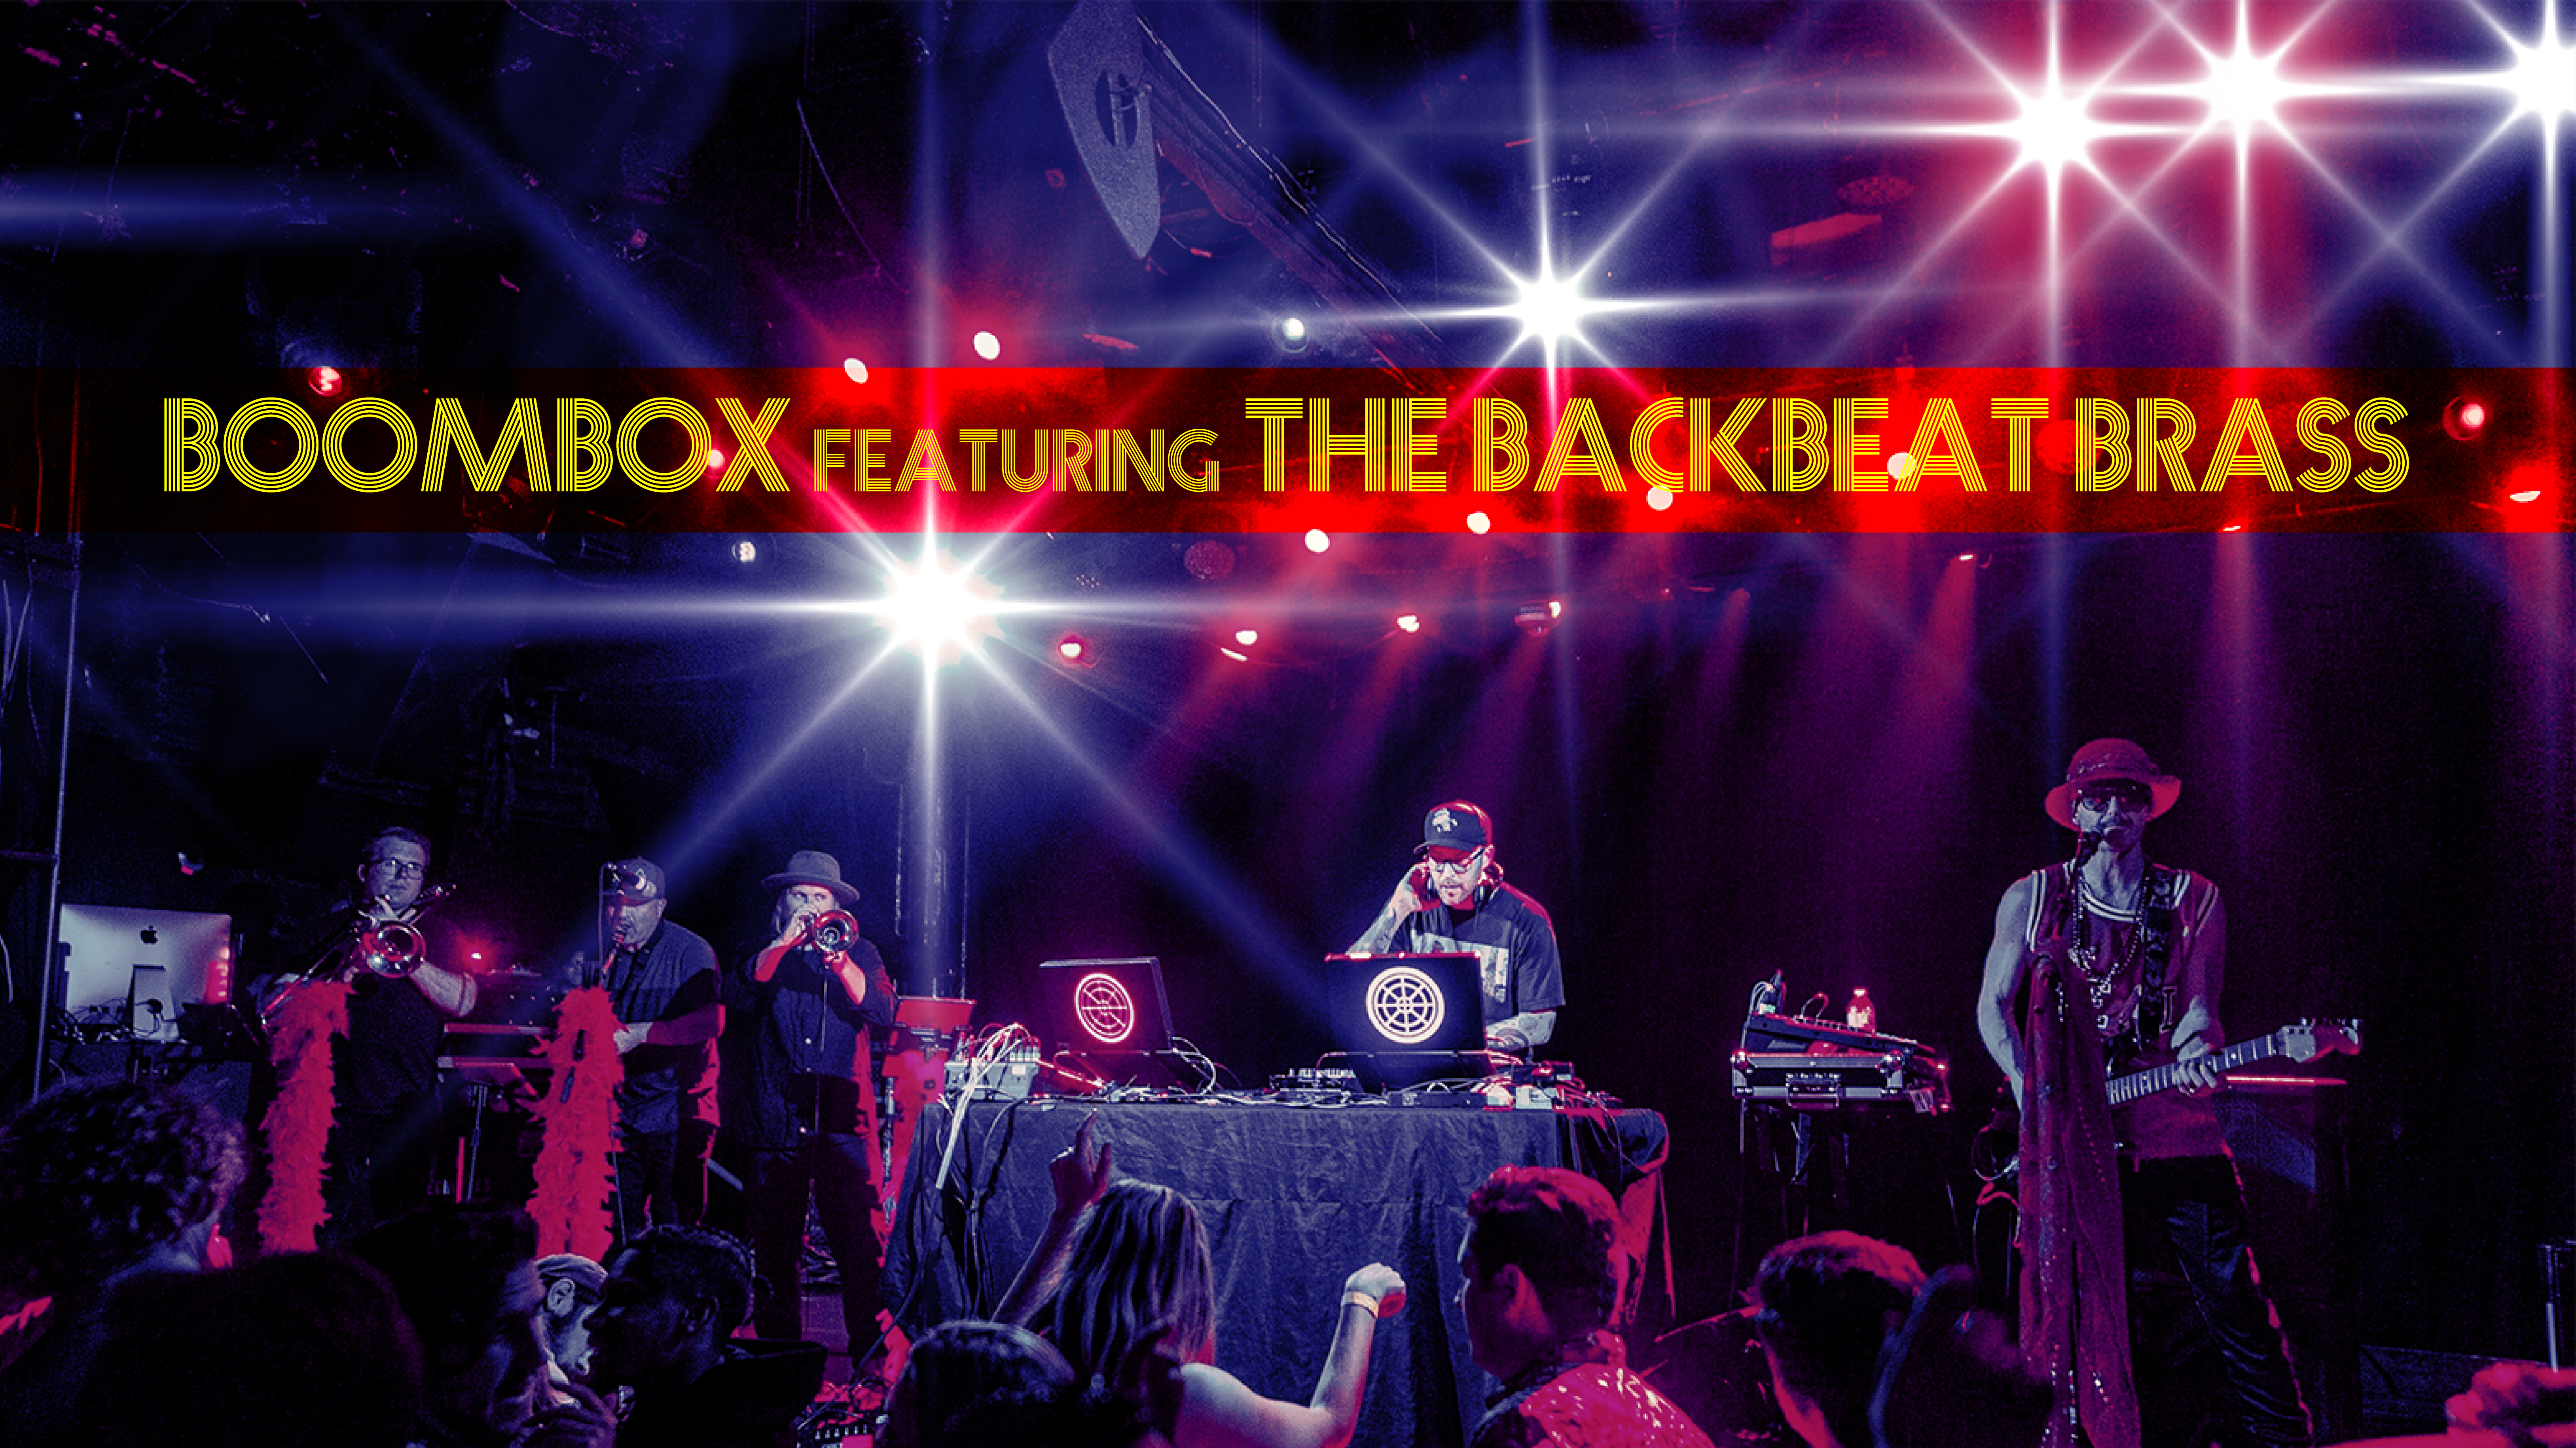 BoomBox featuring the BackBeat Brass